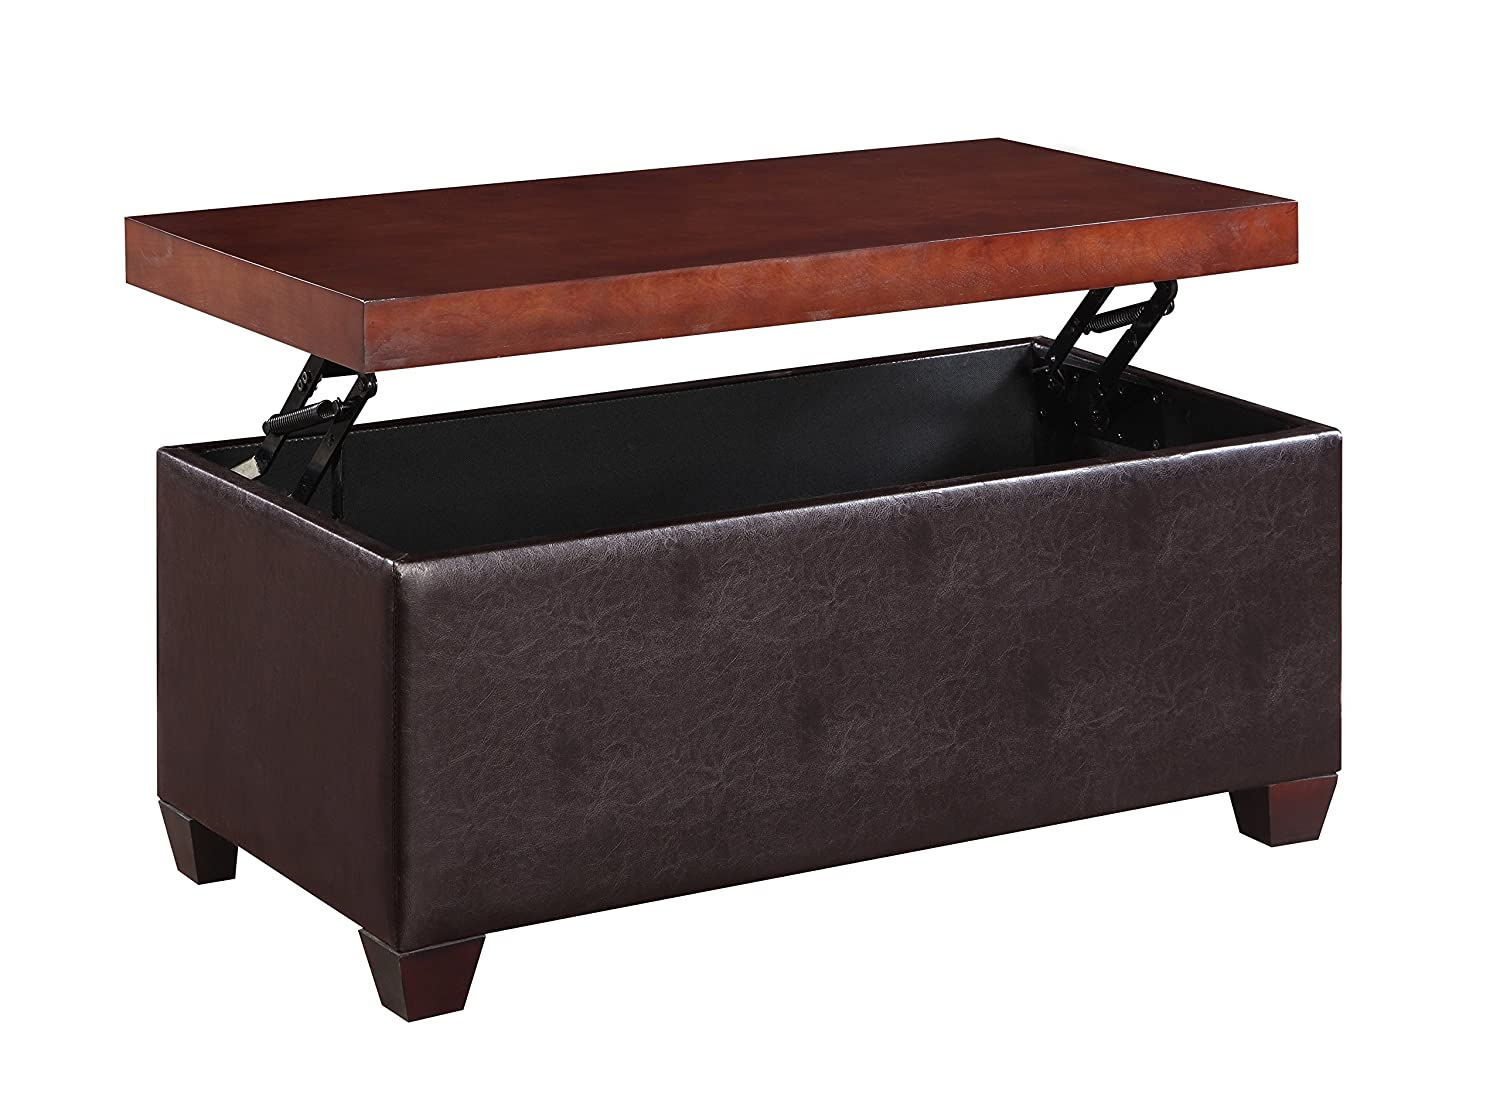 5 Faux Leather Coffee Table Ottoman Combou0026#39;s For Your Stylish Home! u2022 The Vegan Banana